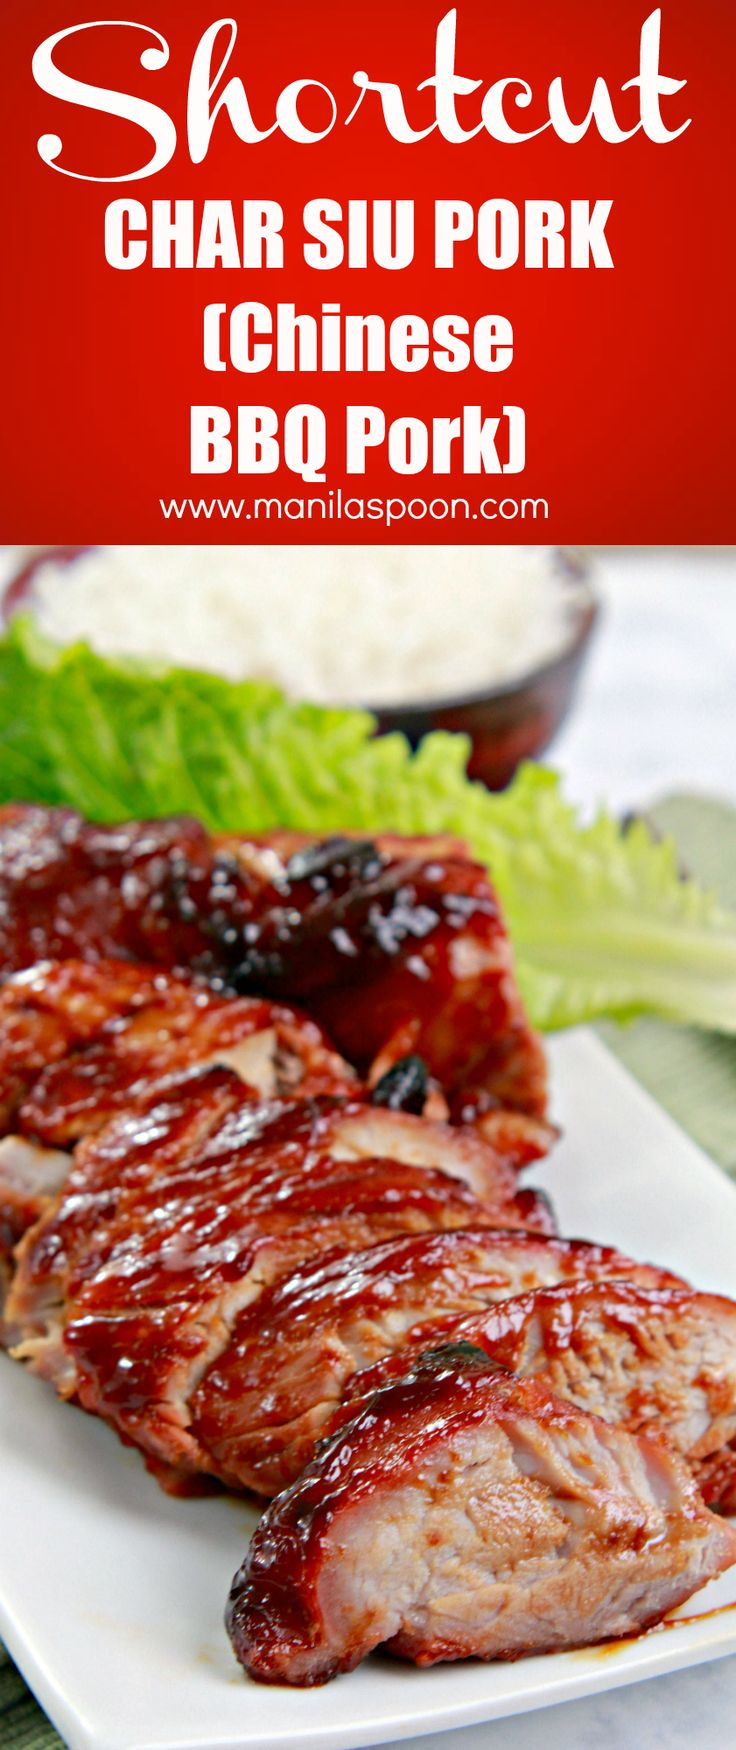 A quick and easy recipe for Chinese Barbecue Pork (Char Siu) using a combo of store-bought sauces so no extra work is required but the result is a delicious meat that comes out so tender and tasty!